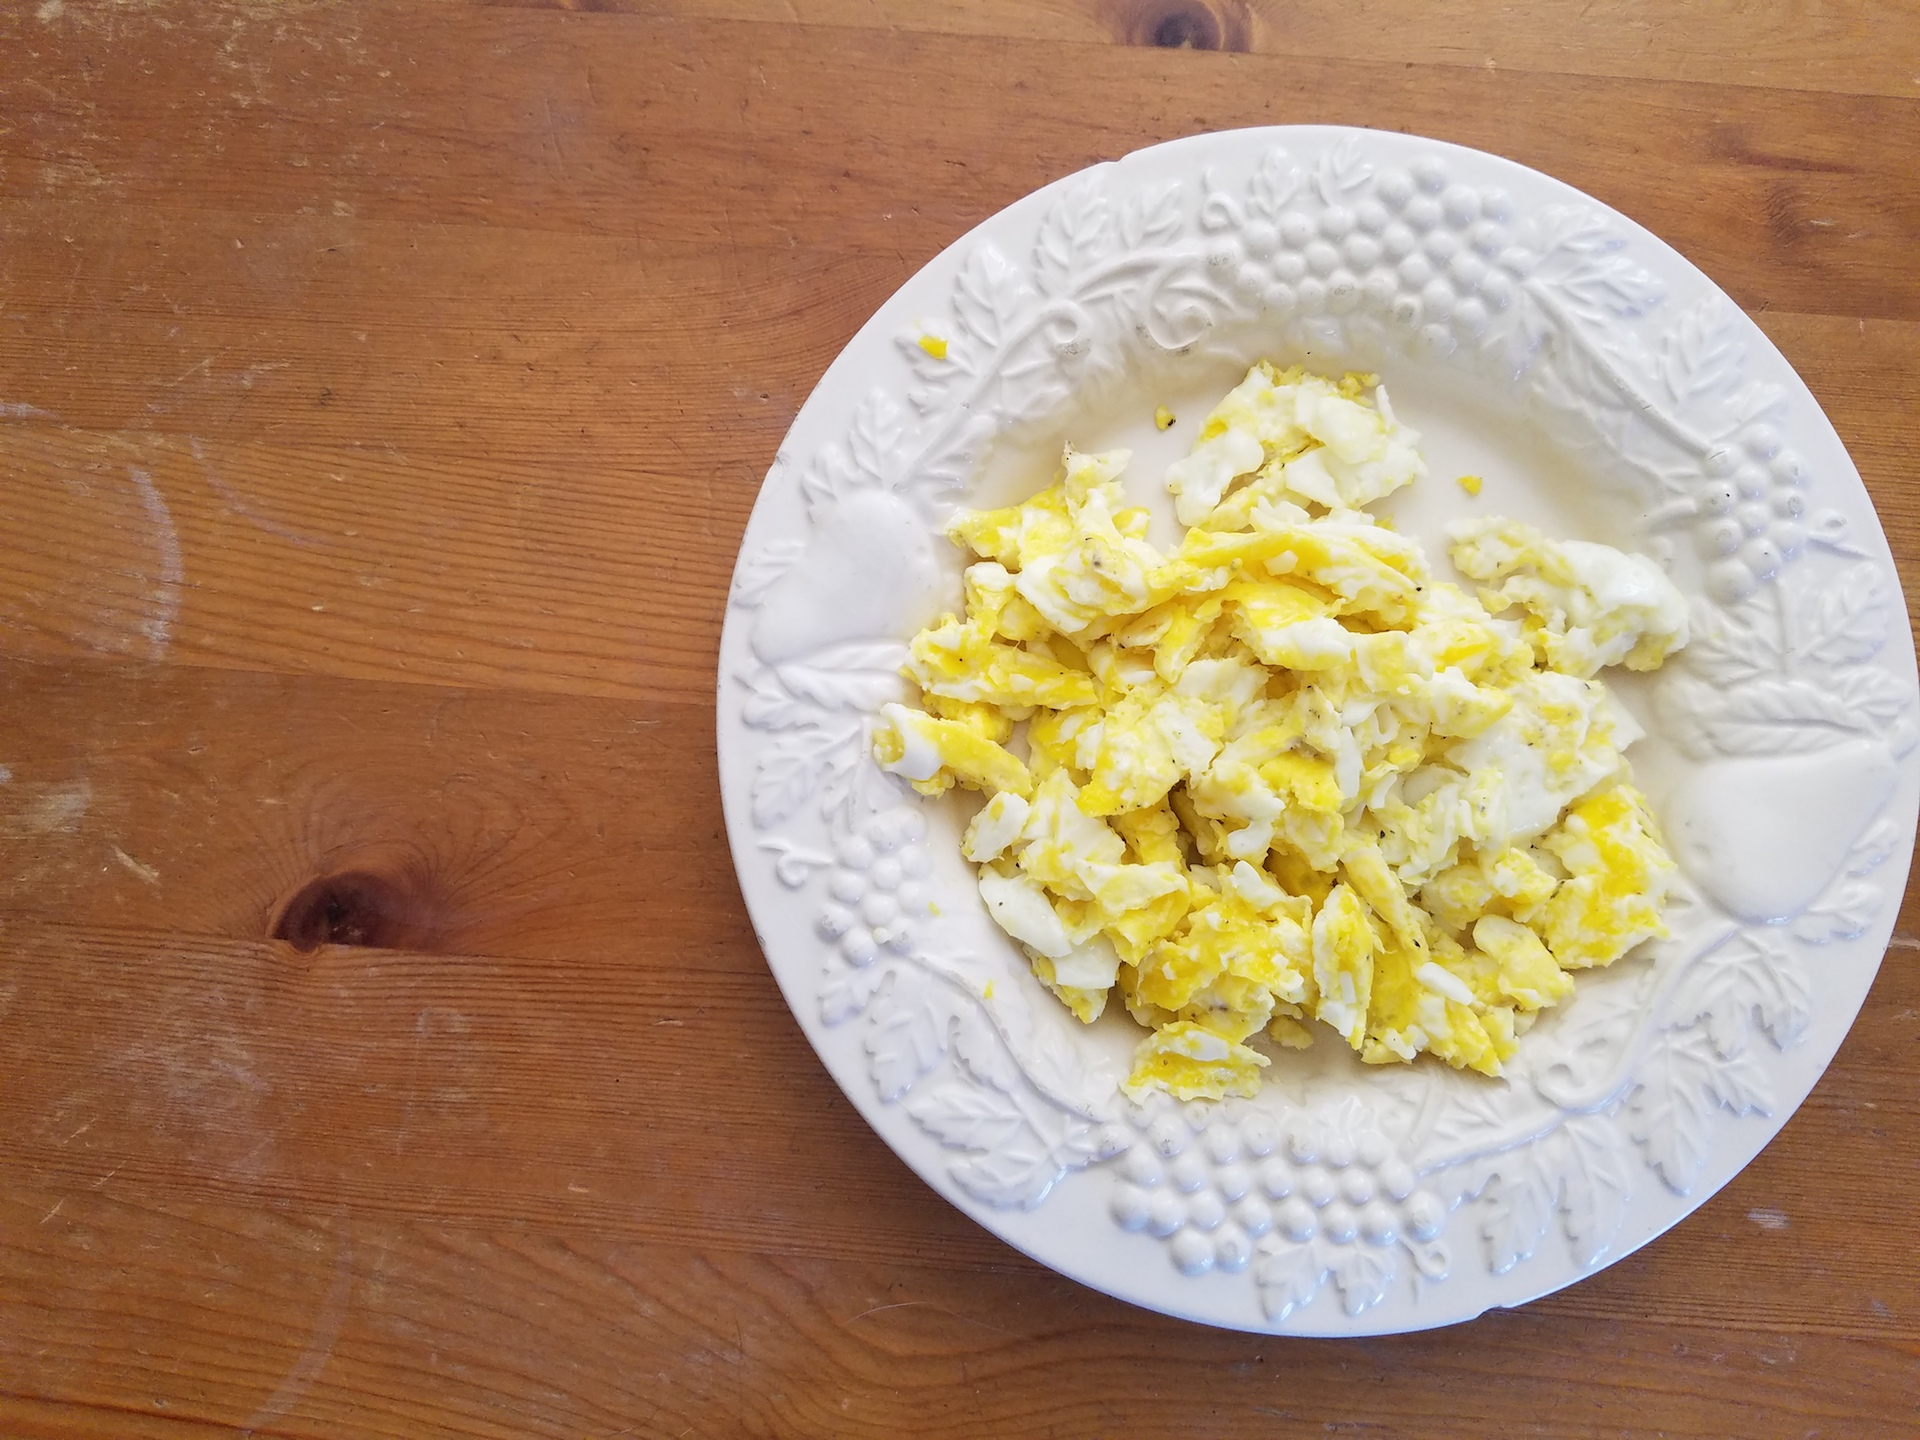 Scrambled eggs from Judy's Family Farm